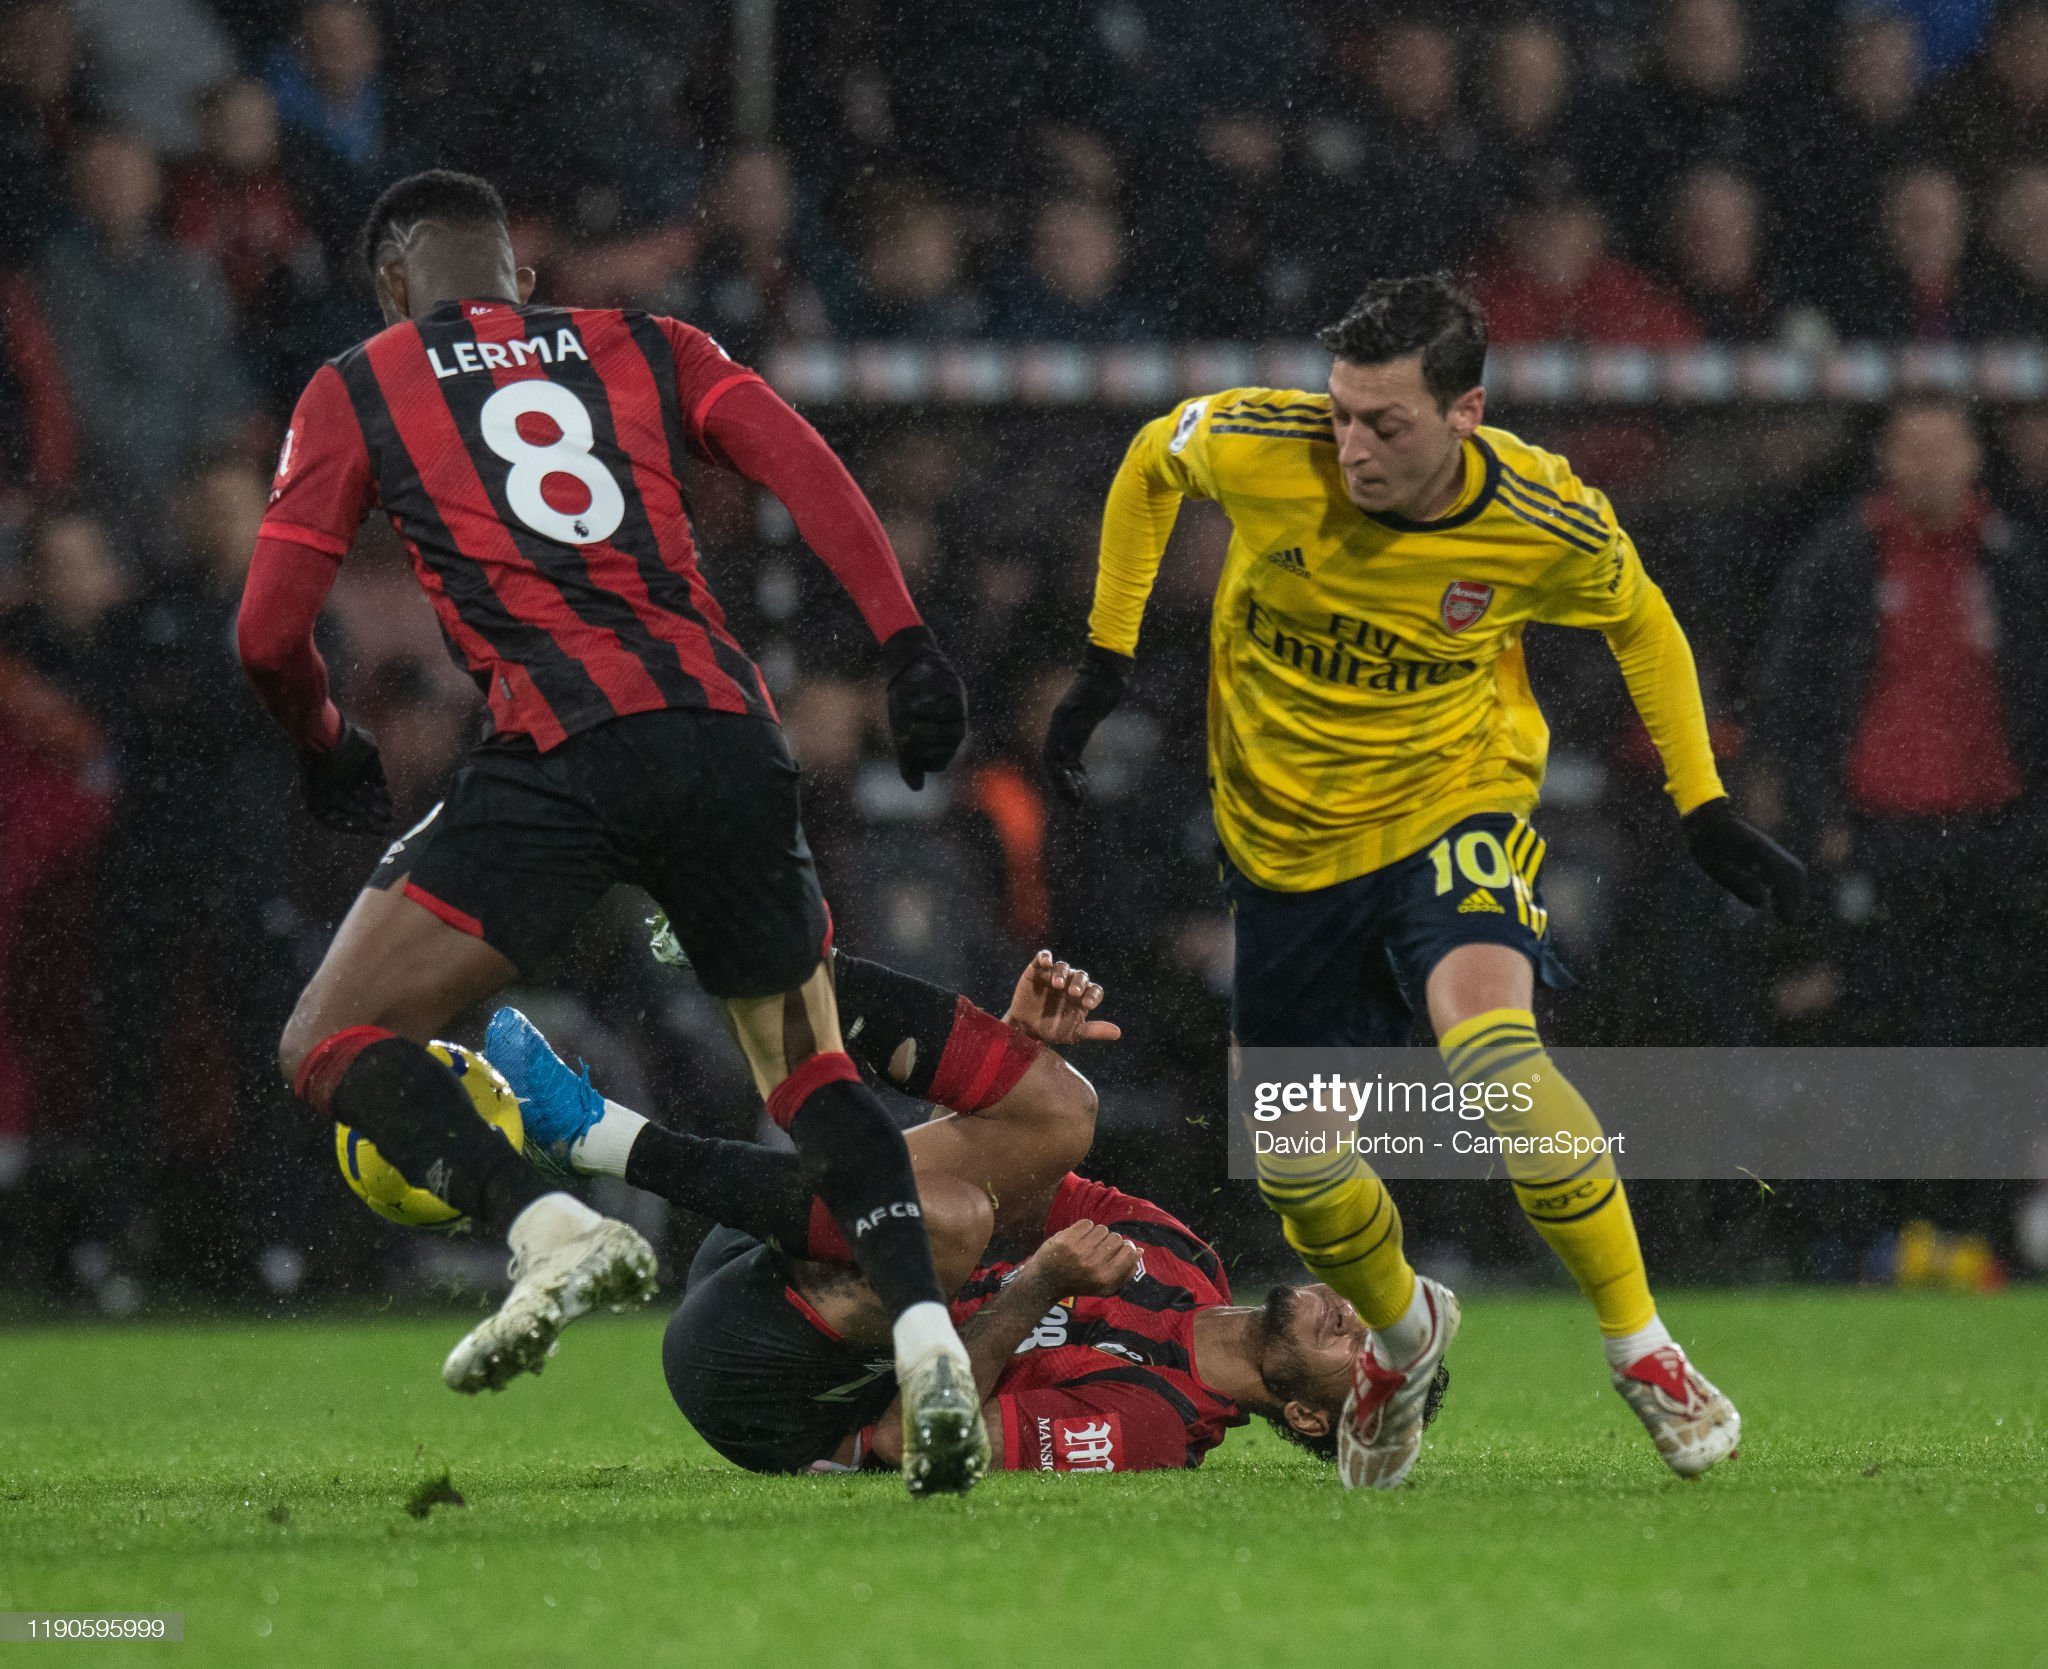 Bournemouth v Arsenal preview, prediction and odds